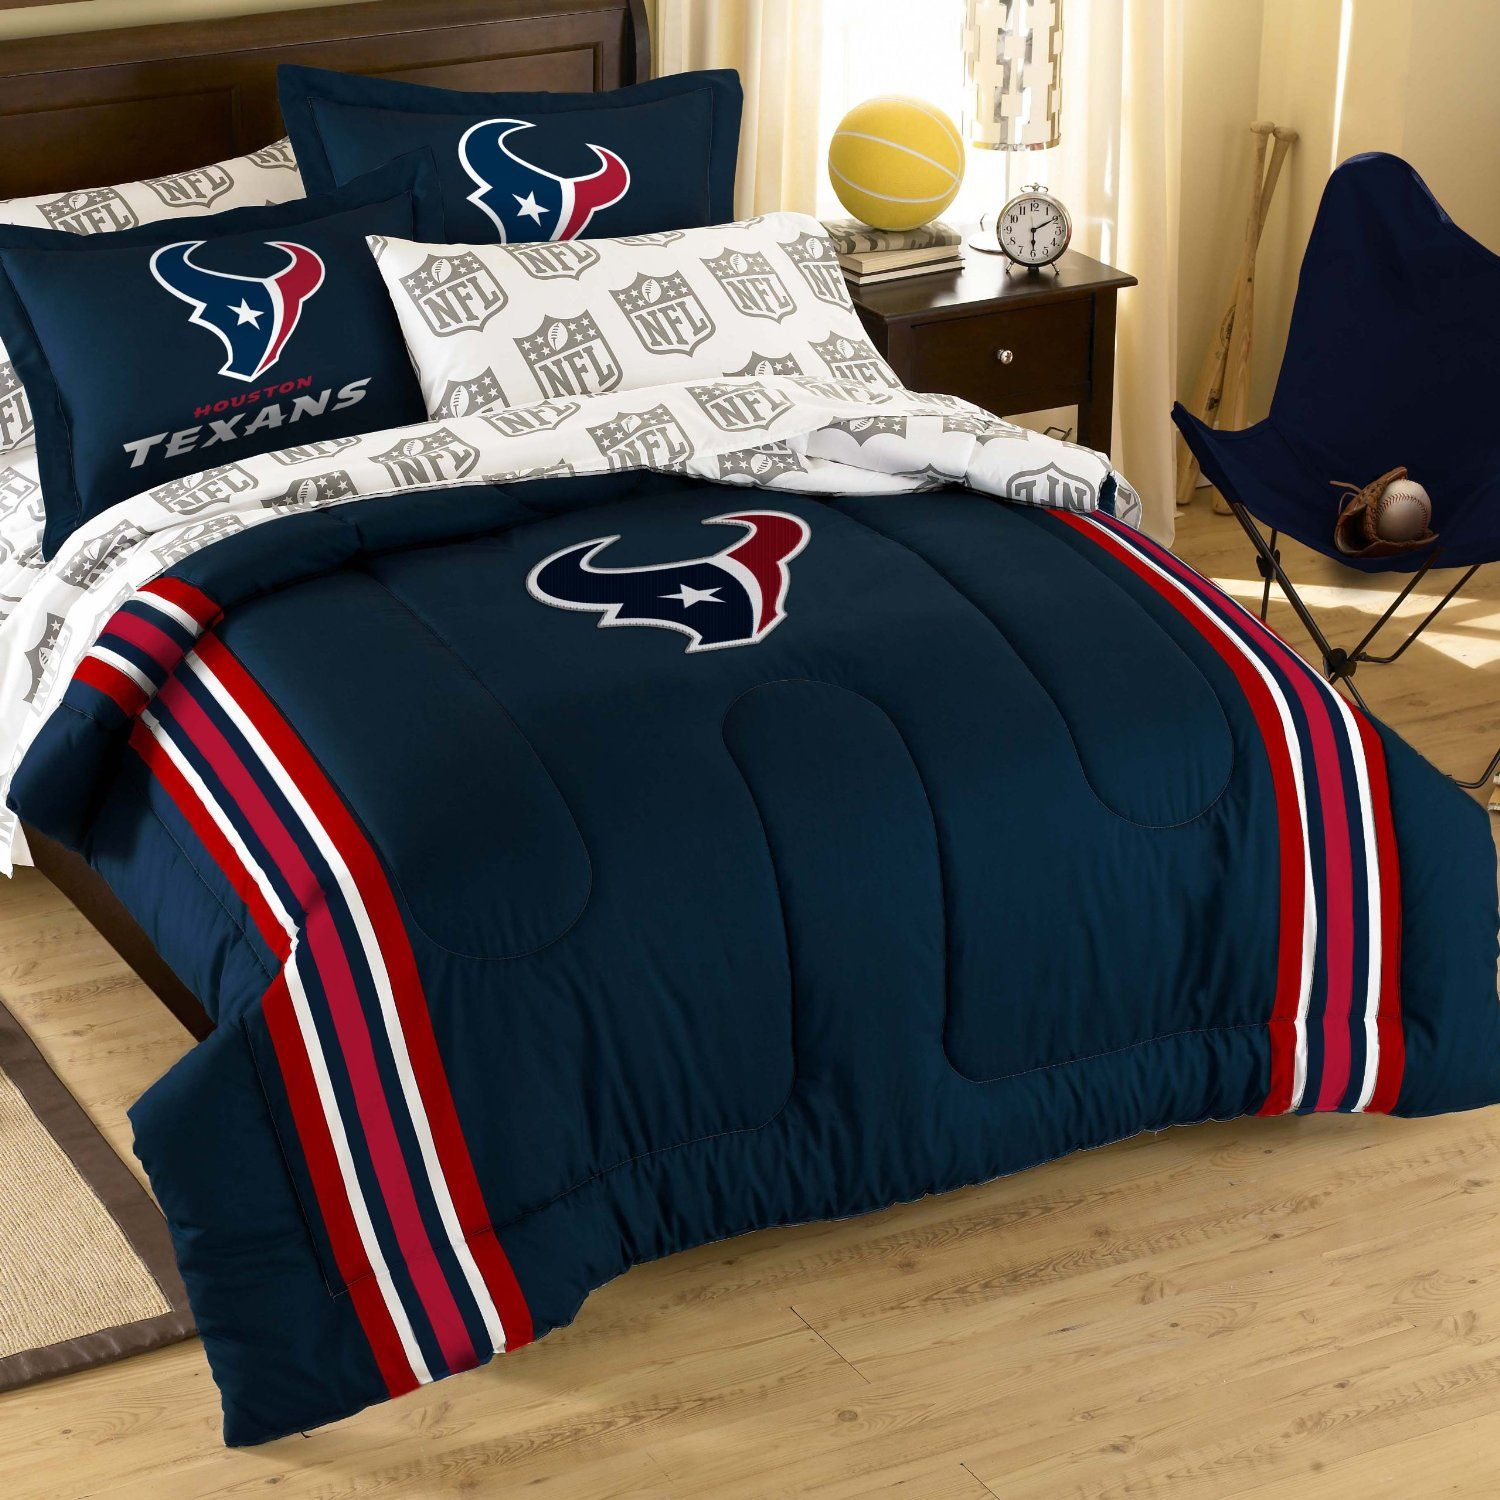 nfl houston texans bedding set. idea, i could do iron-ons for the